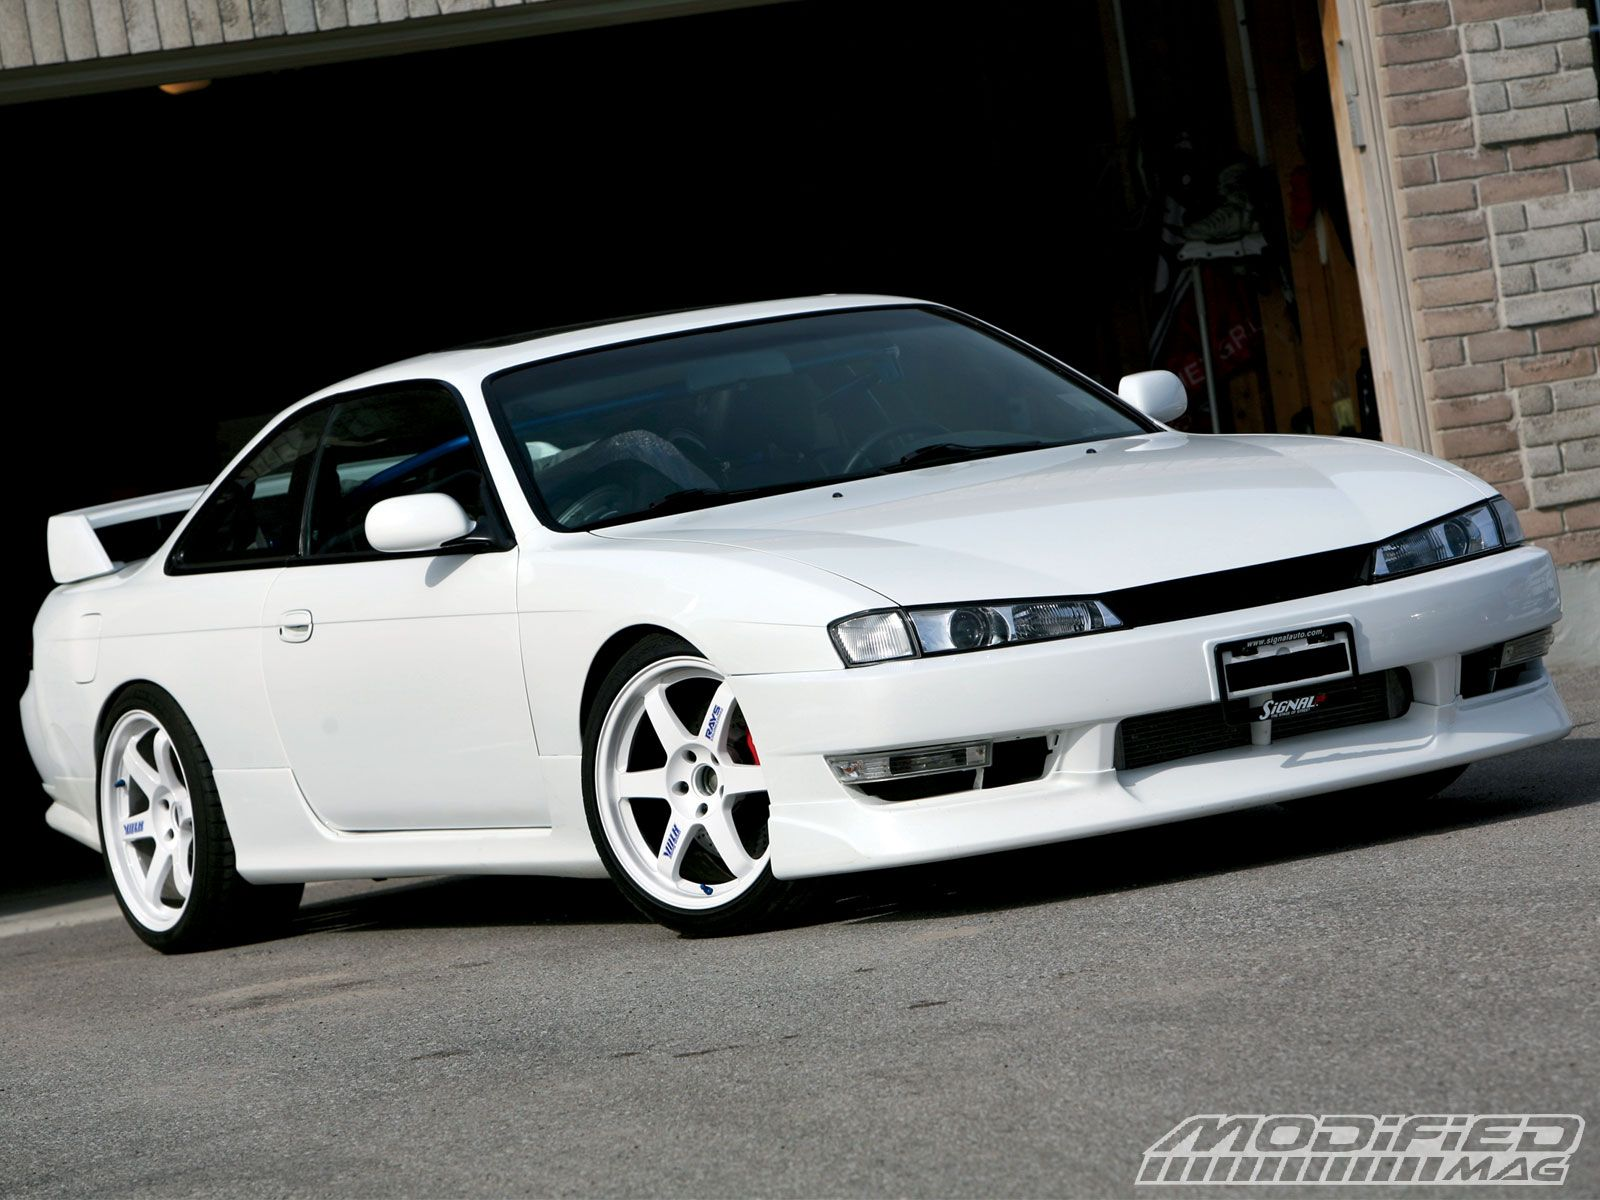 Wallpaper Top 10 JDM - Nissan 240sx S15